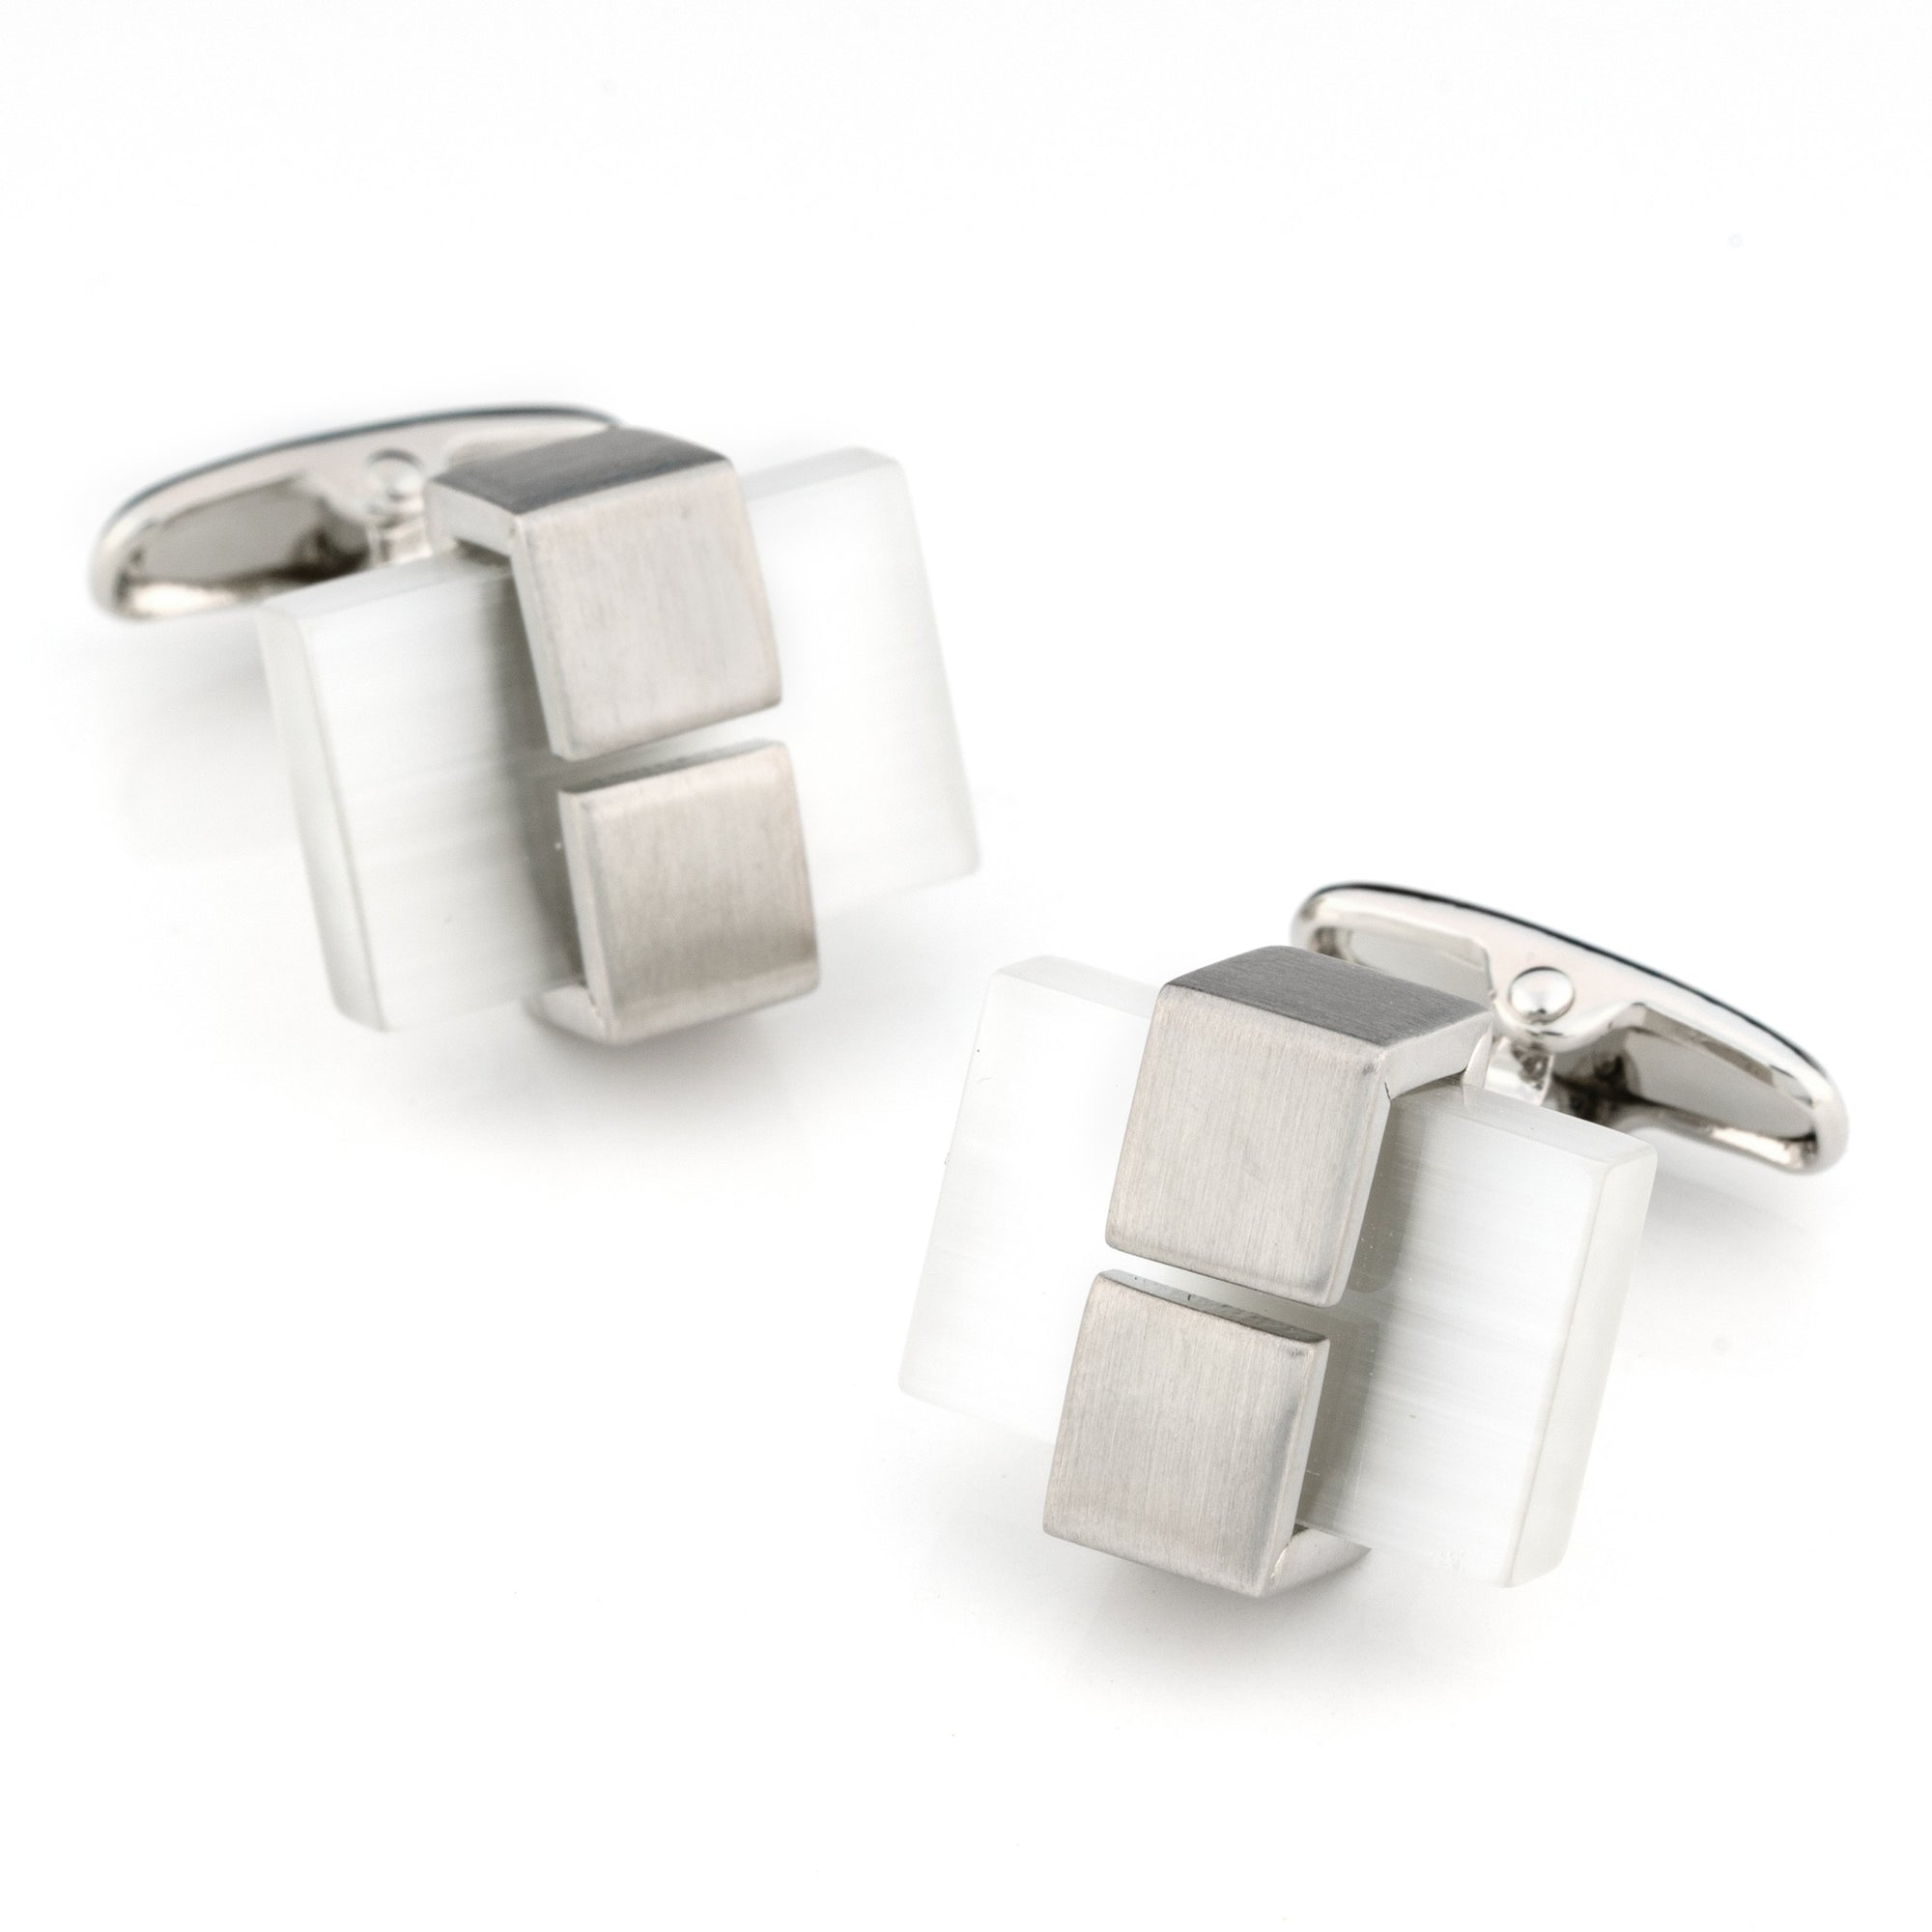 White Ice Cateye Cufflinks Classic & Modern Cufflinks Clinks Australia White Ice Cateye Cufflinks